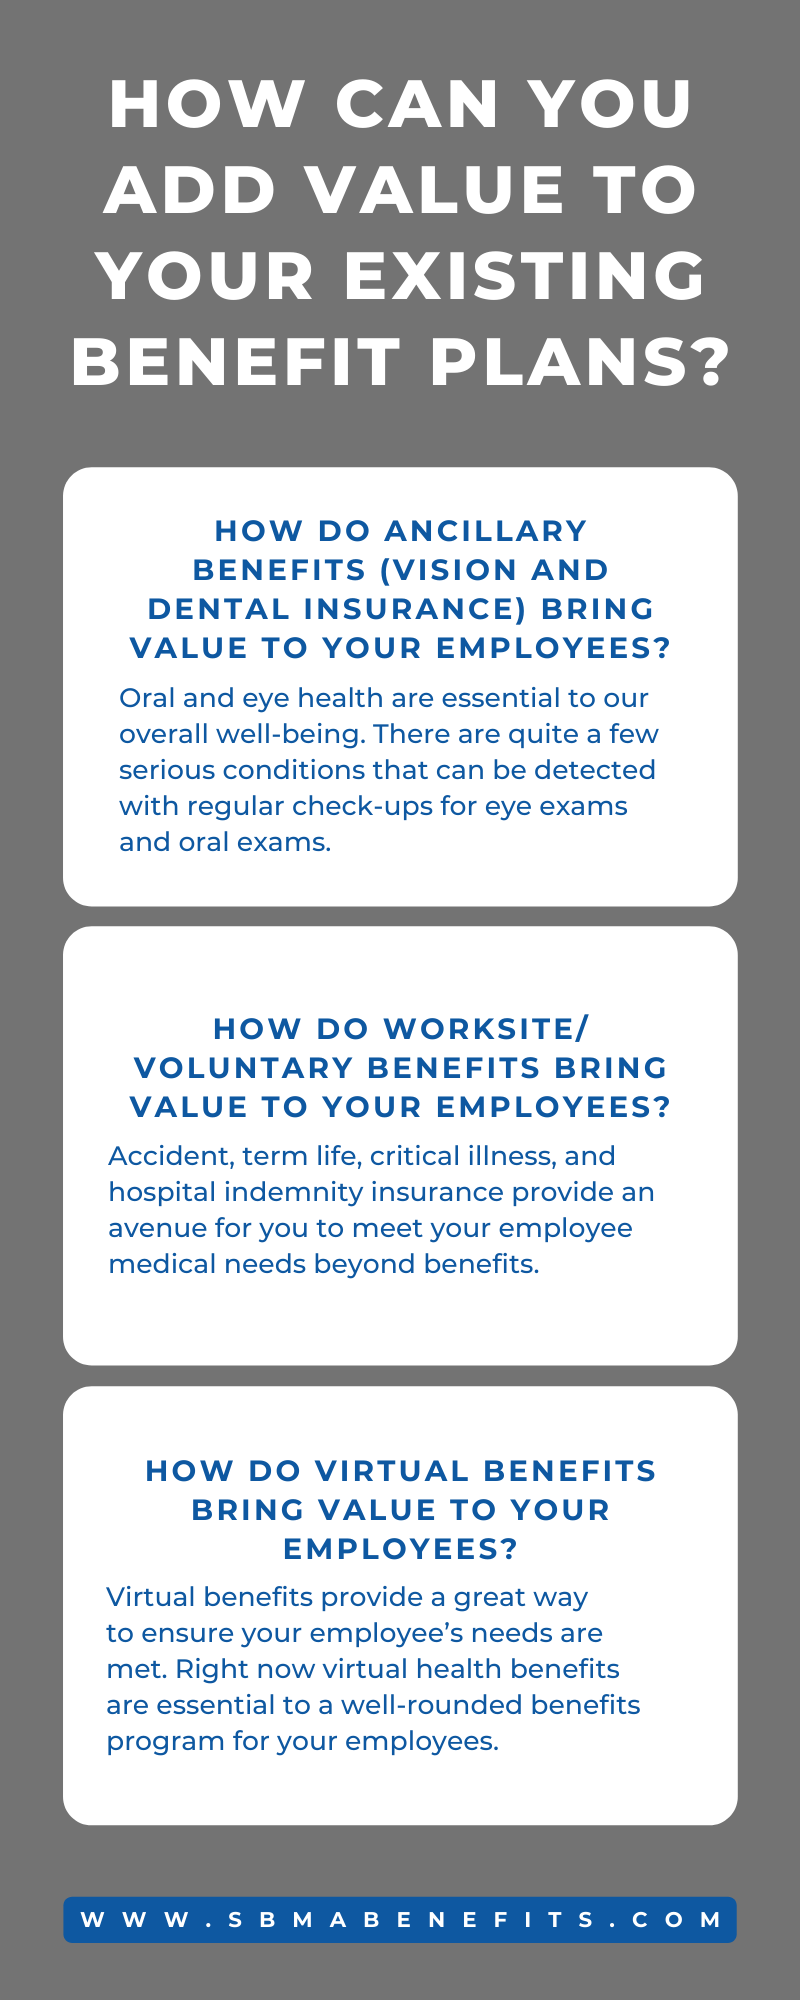 How Can You Add Value to Your Existing Benefit Plans?